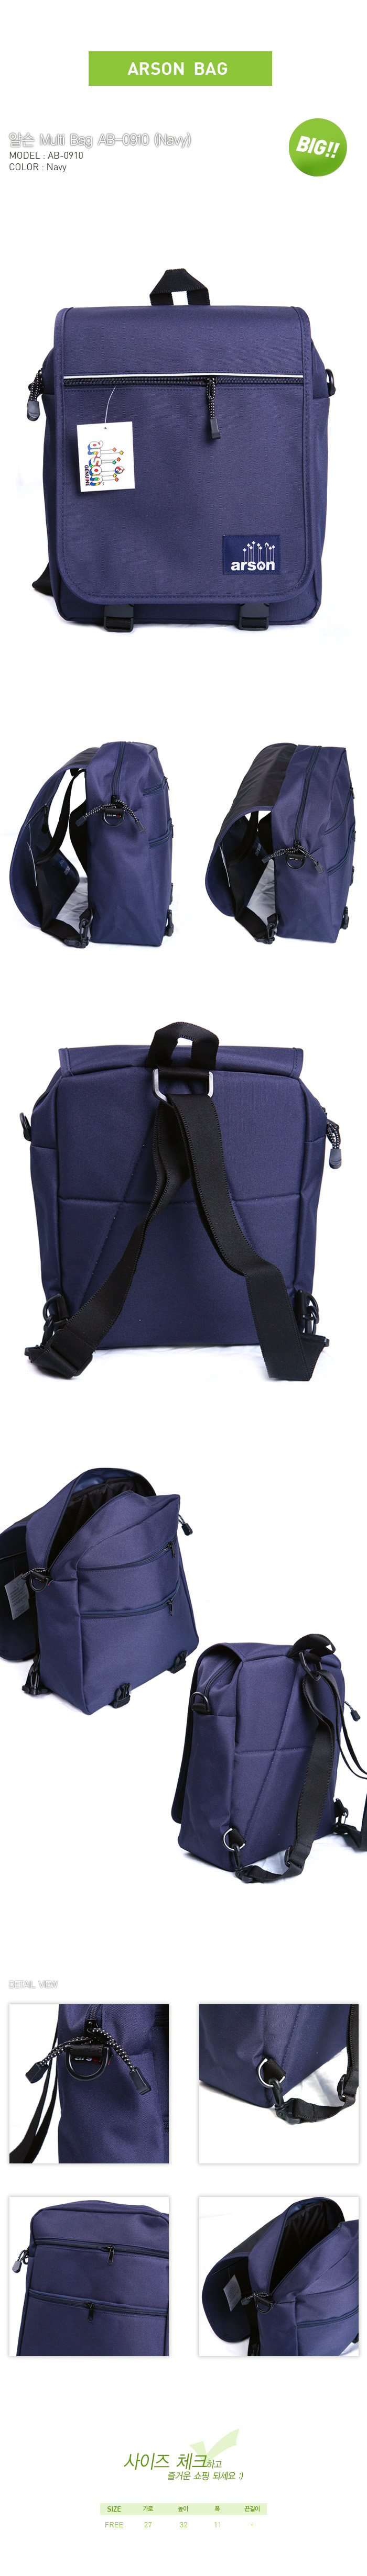 [ ARSON ] AB-0910 (Navy)/Backpack School Cross Bag